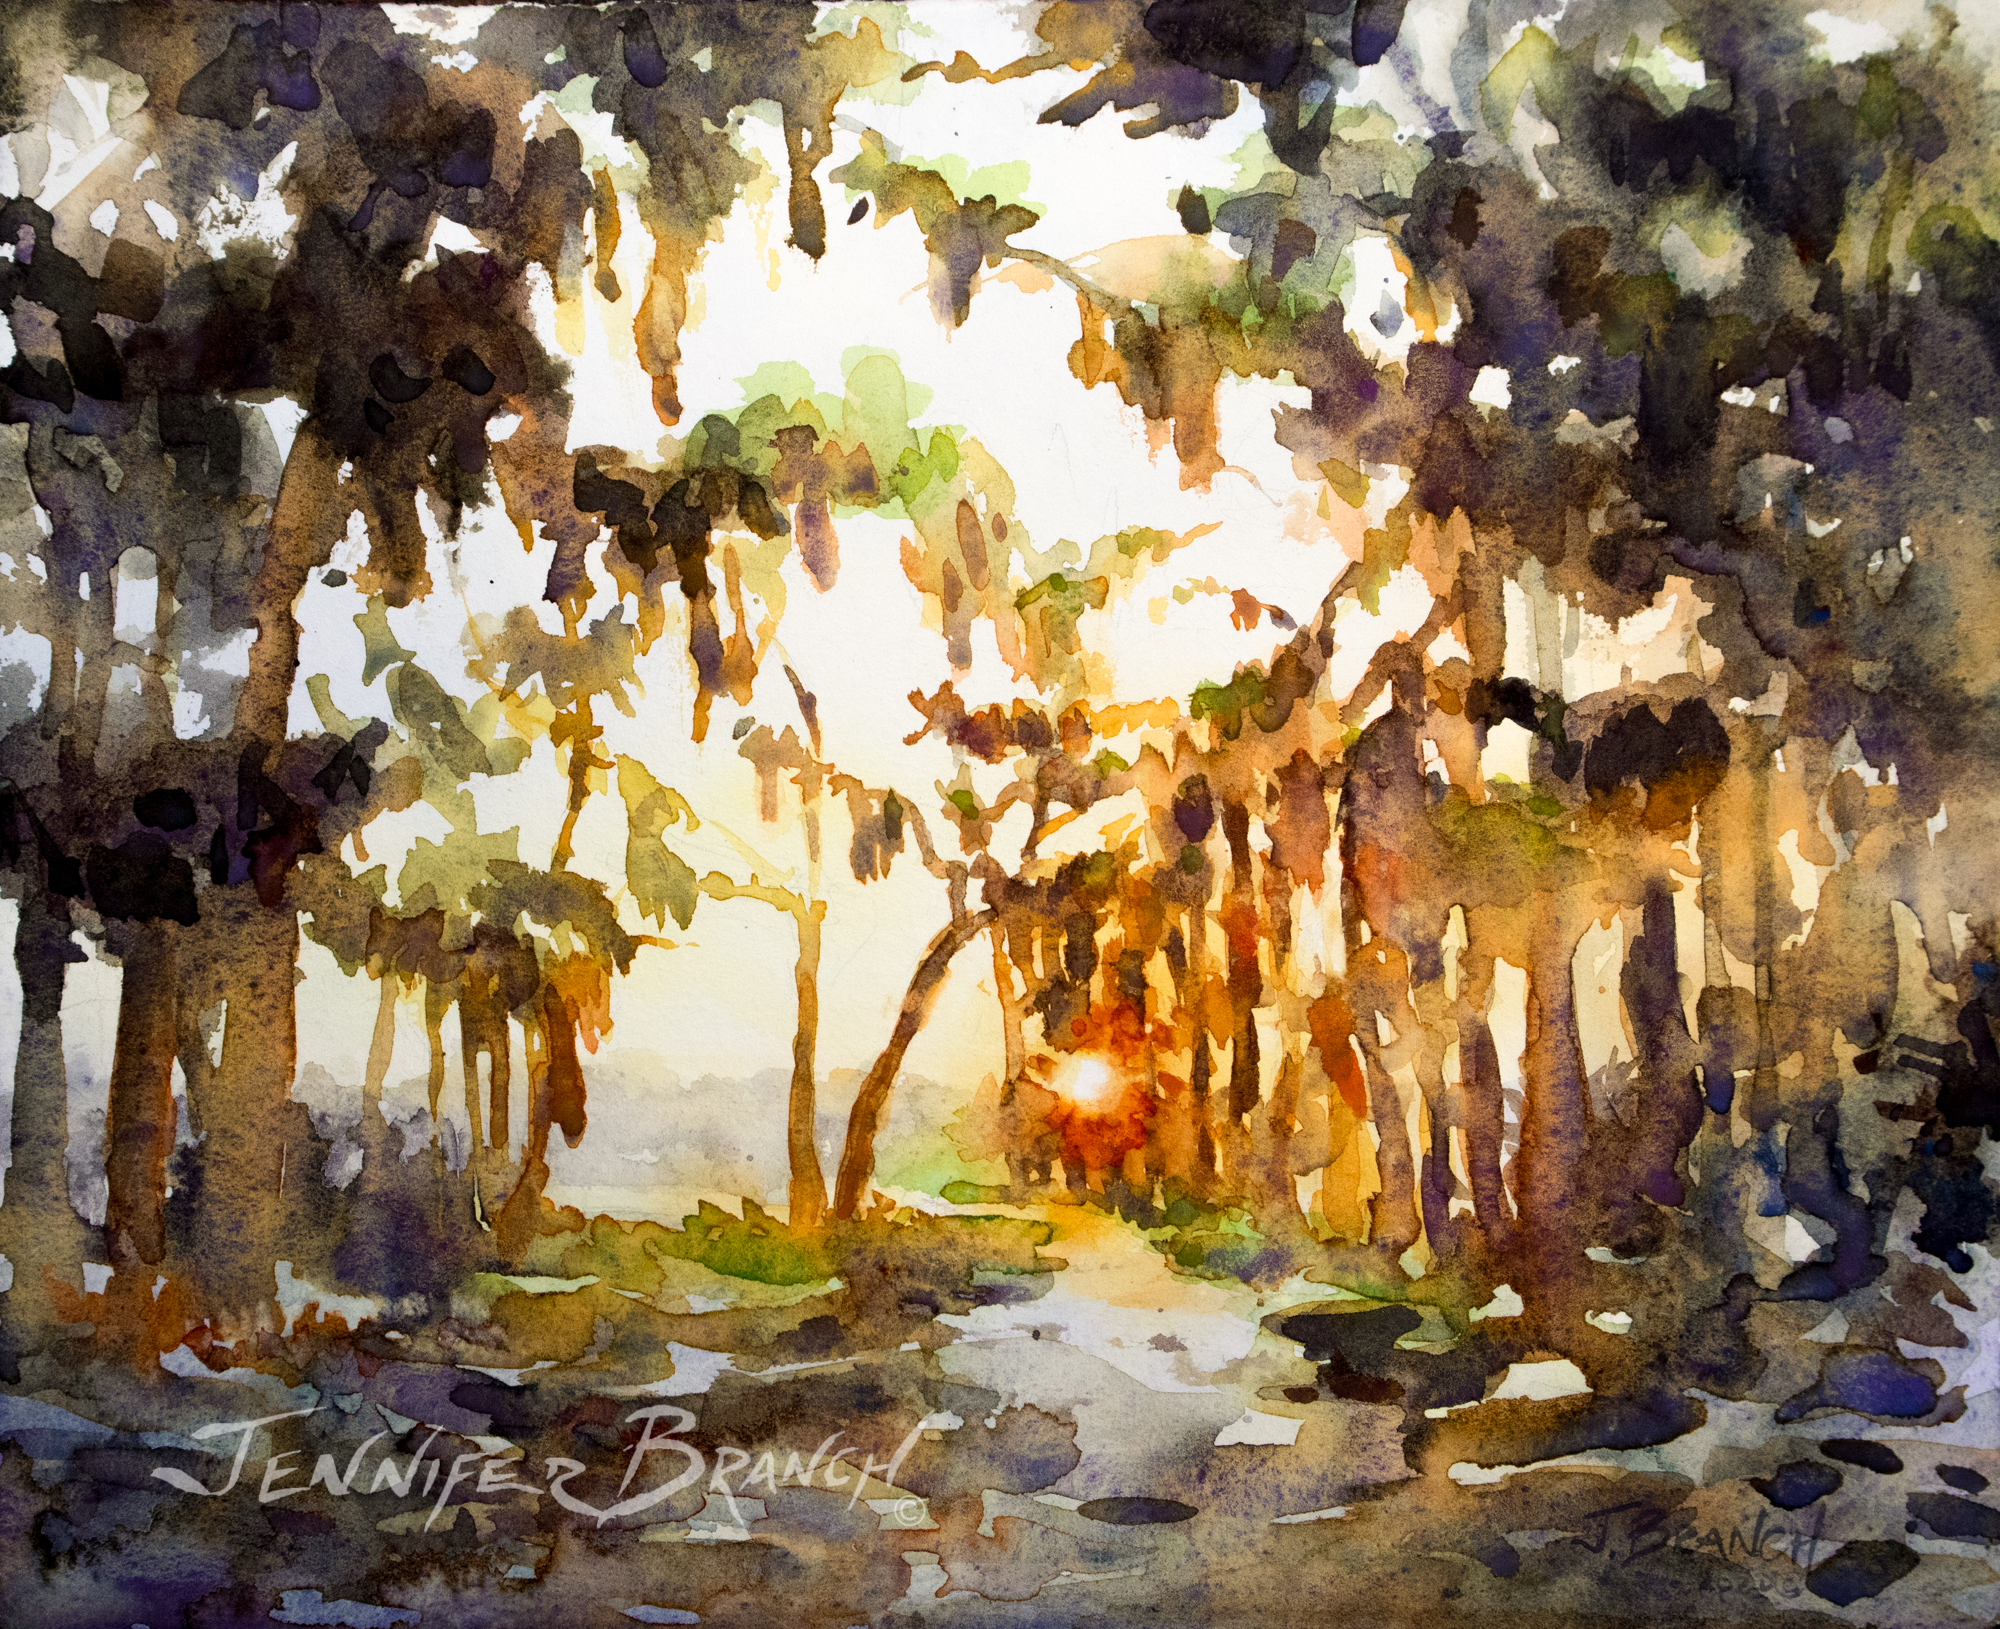 Sunset through live oaks and Spanish moss watercolor painting by Jennifer Branch. by Jennifer Branch.